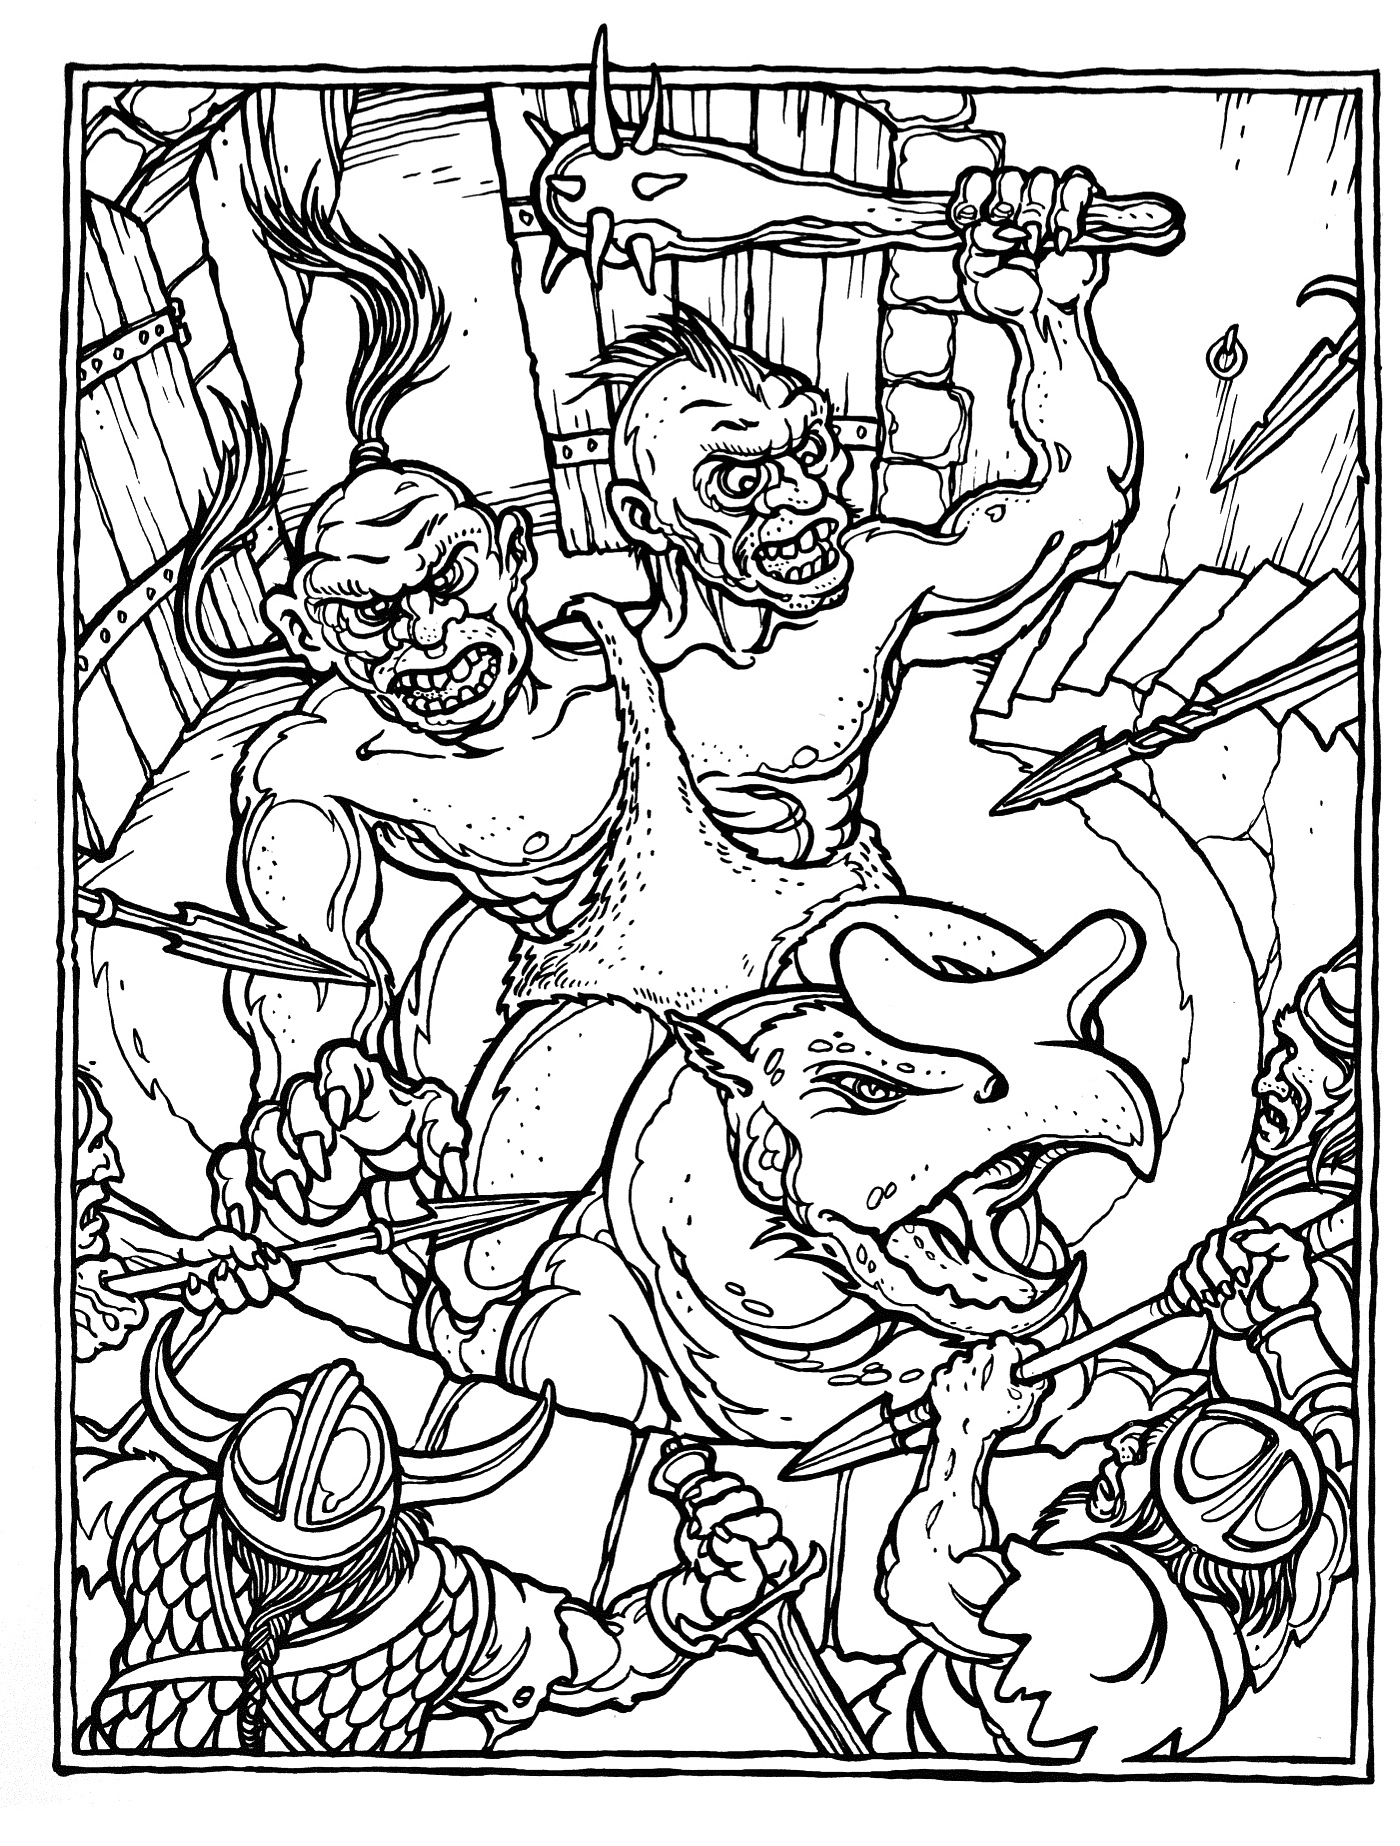 d is for dragon coloring page baby dragon hatching coloring page coloringrocks in d is for coloring dragon page